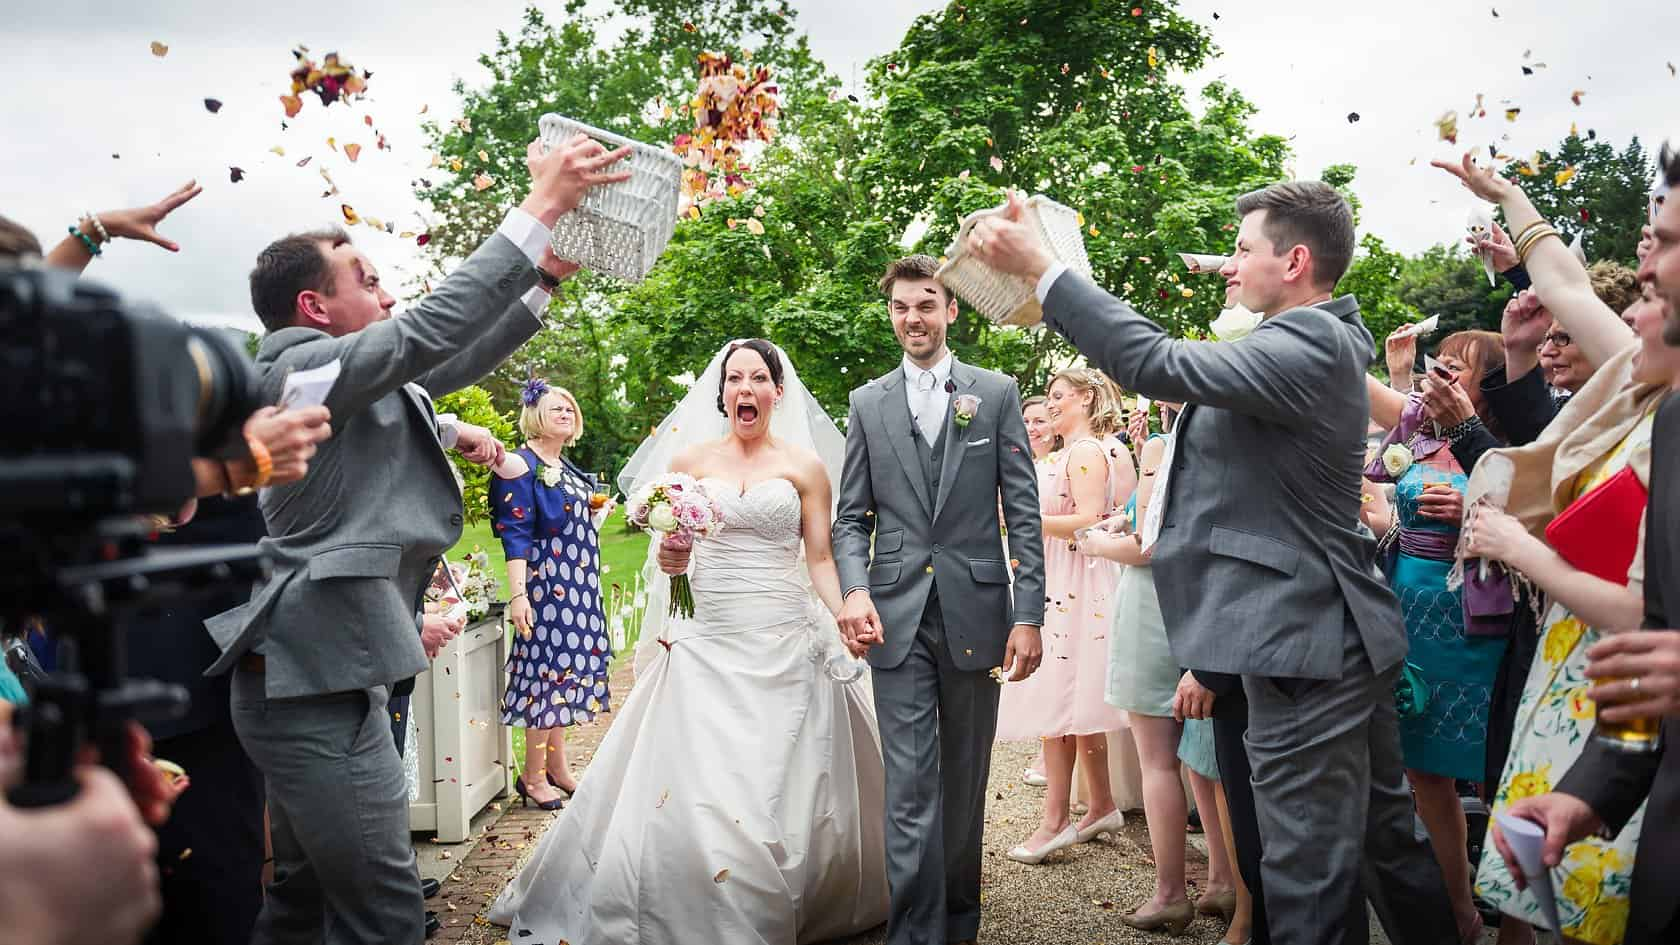 Documentary-Wedding-Photography-Justin-Bailey-Confetti-With-Funny-Faces